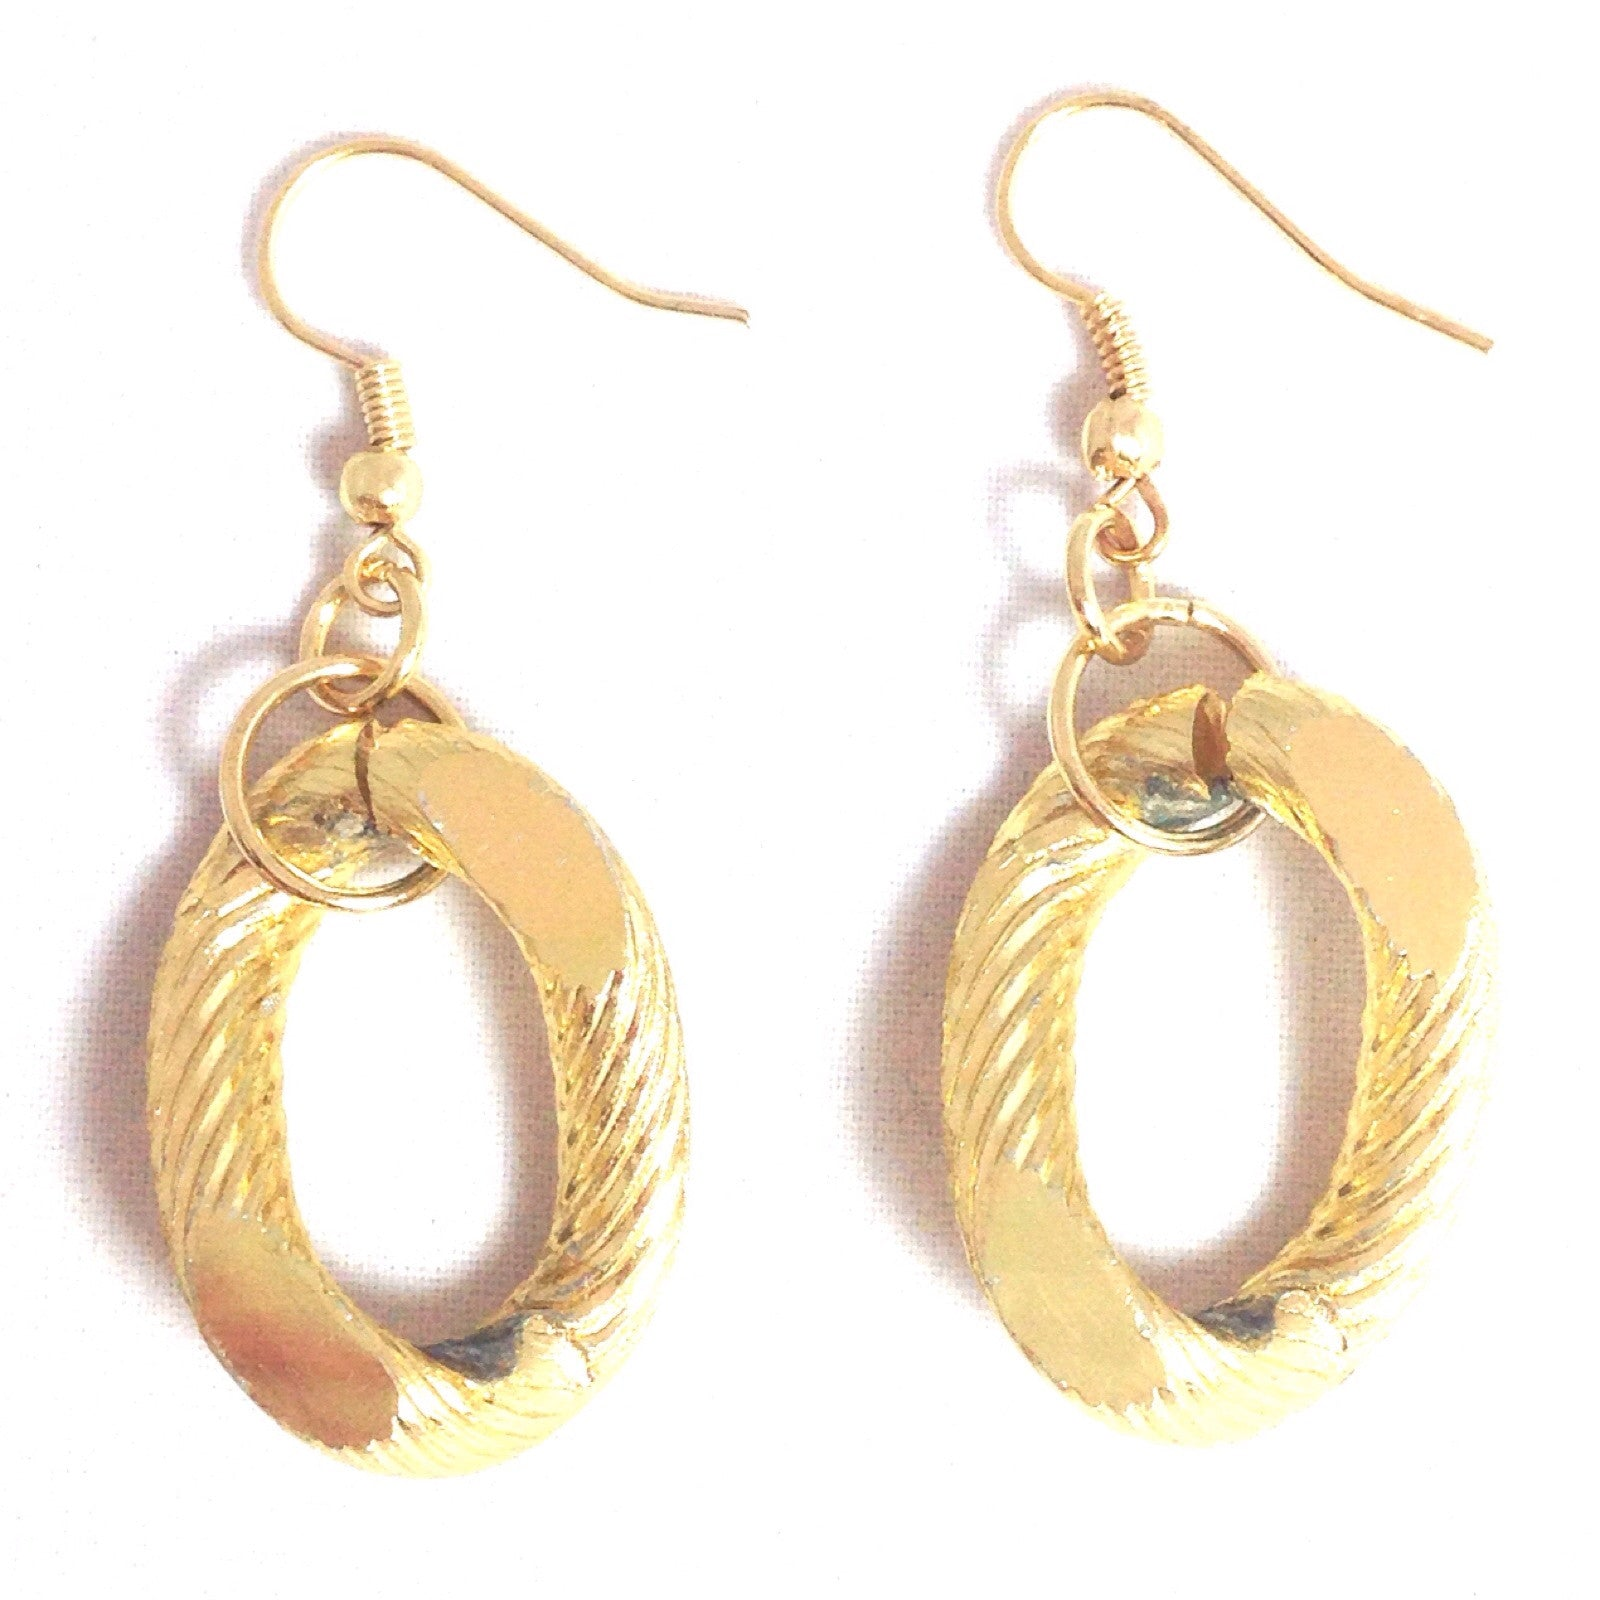 Threaded Chain Dangles, $7 | Fashion Gold Earrings | Light Years Jewelry